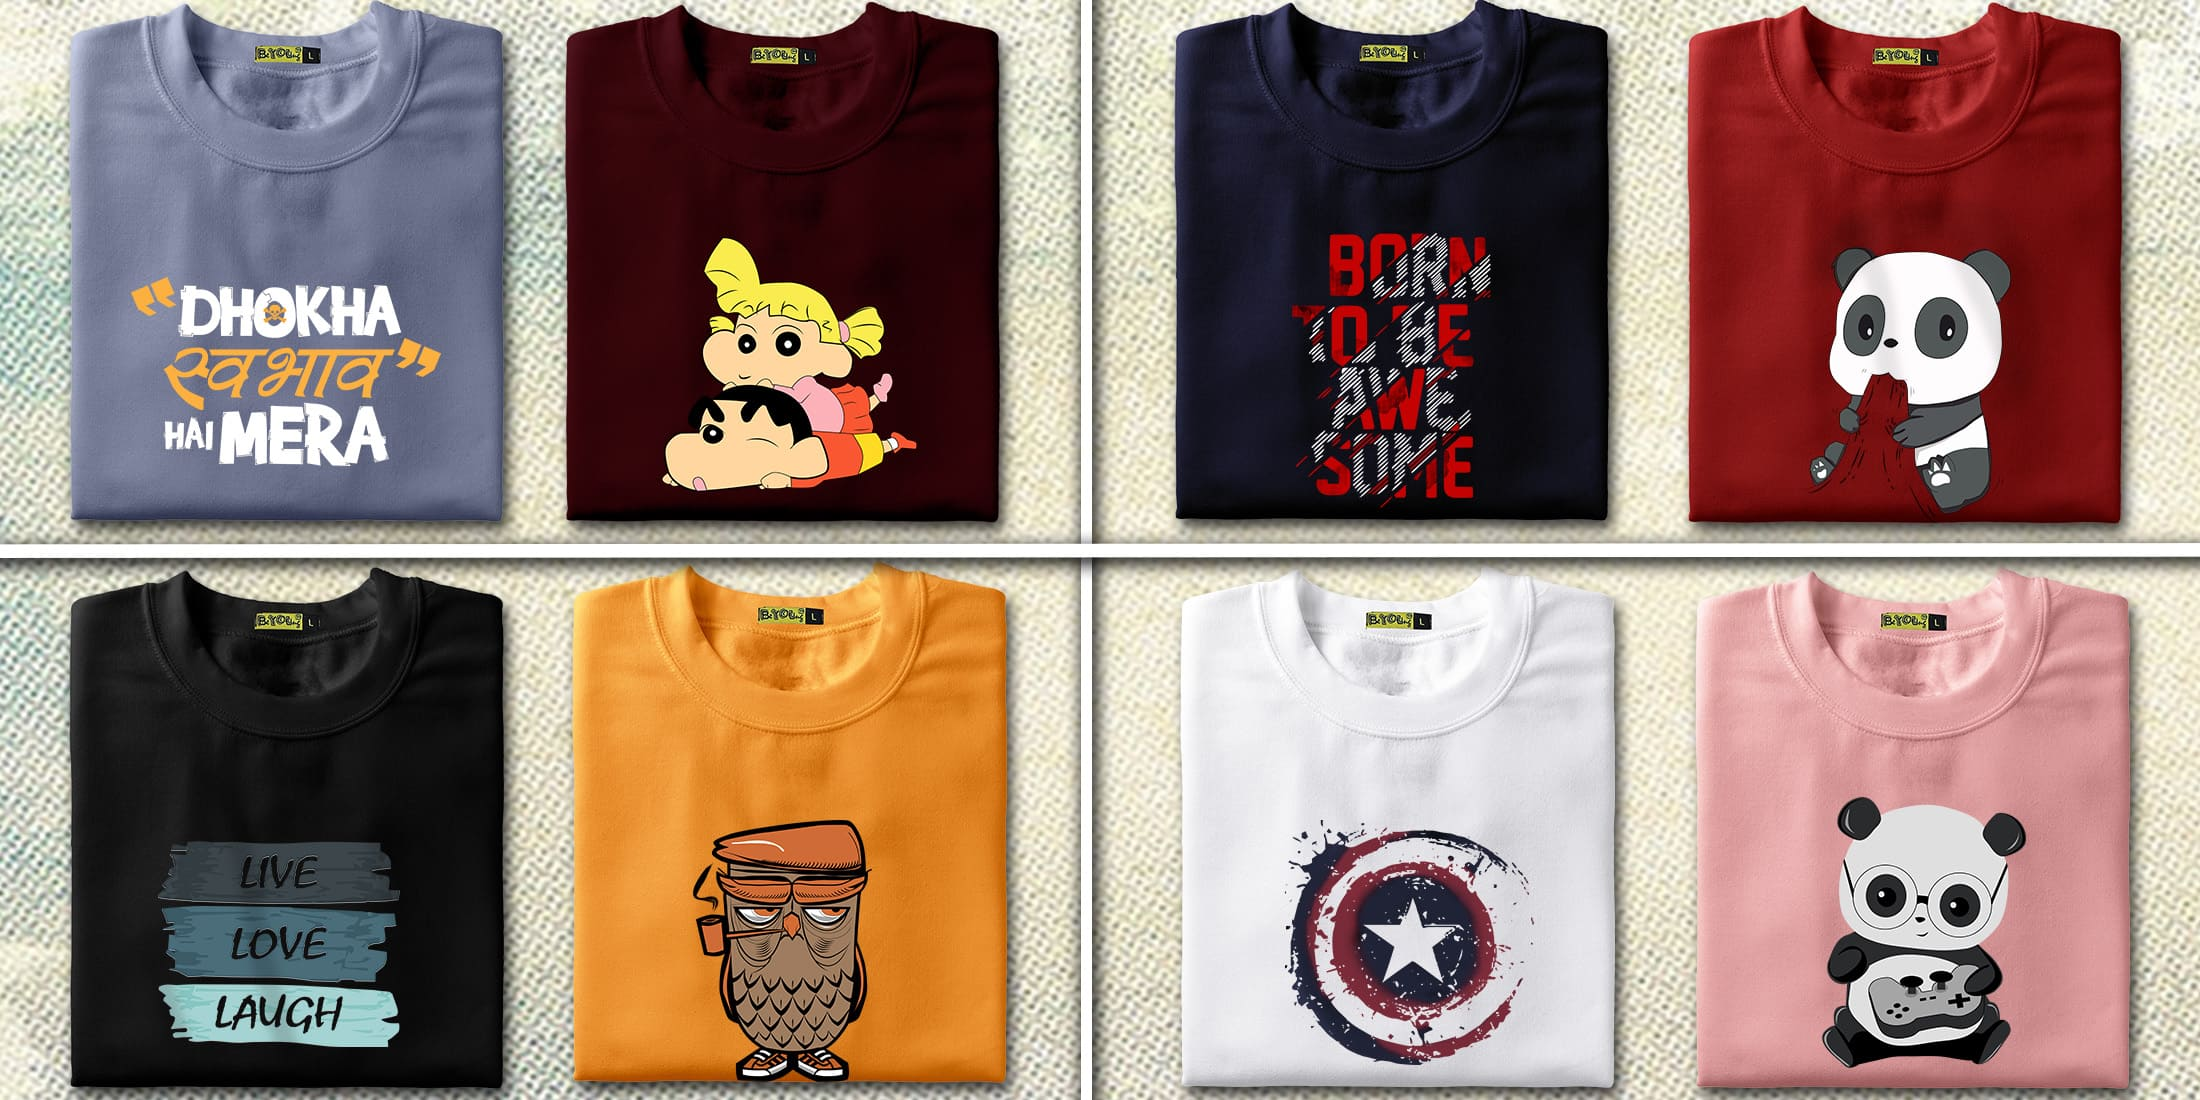 3cab9ebf7c5 Whenever it comes to bring an iconic change in the t-shirt styling then  theme based designs comes as a savior. Enrich cool t-shirts based on a  particular ...